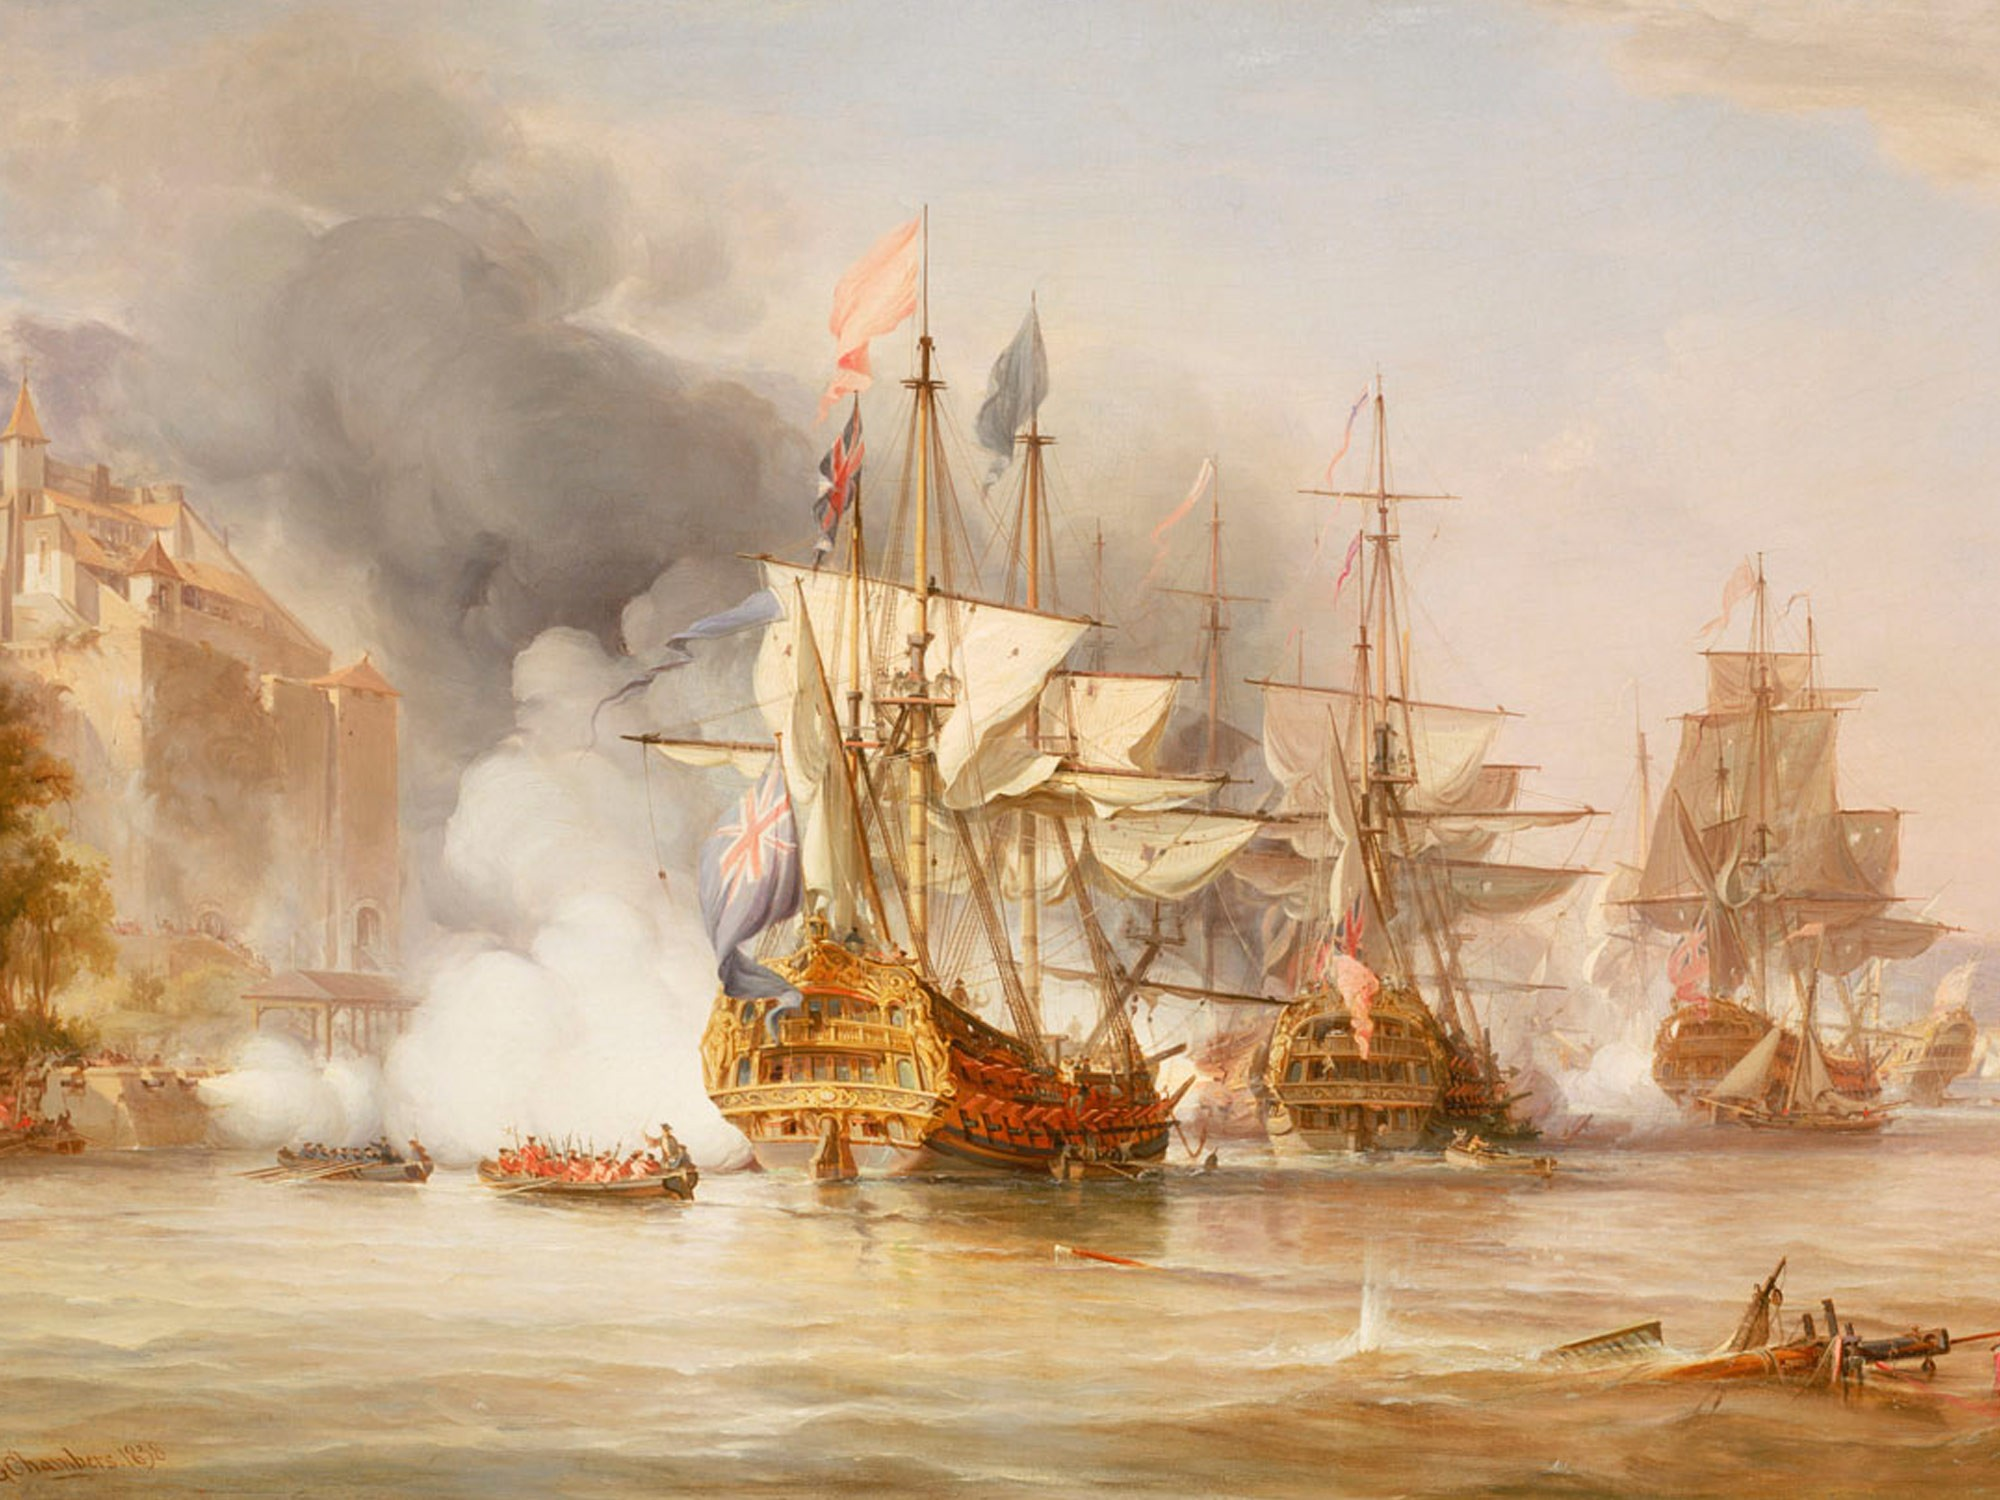 Painting of the capture of Puerto Bello 21 November 1739